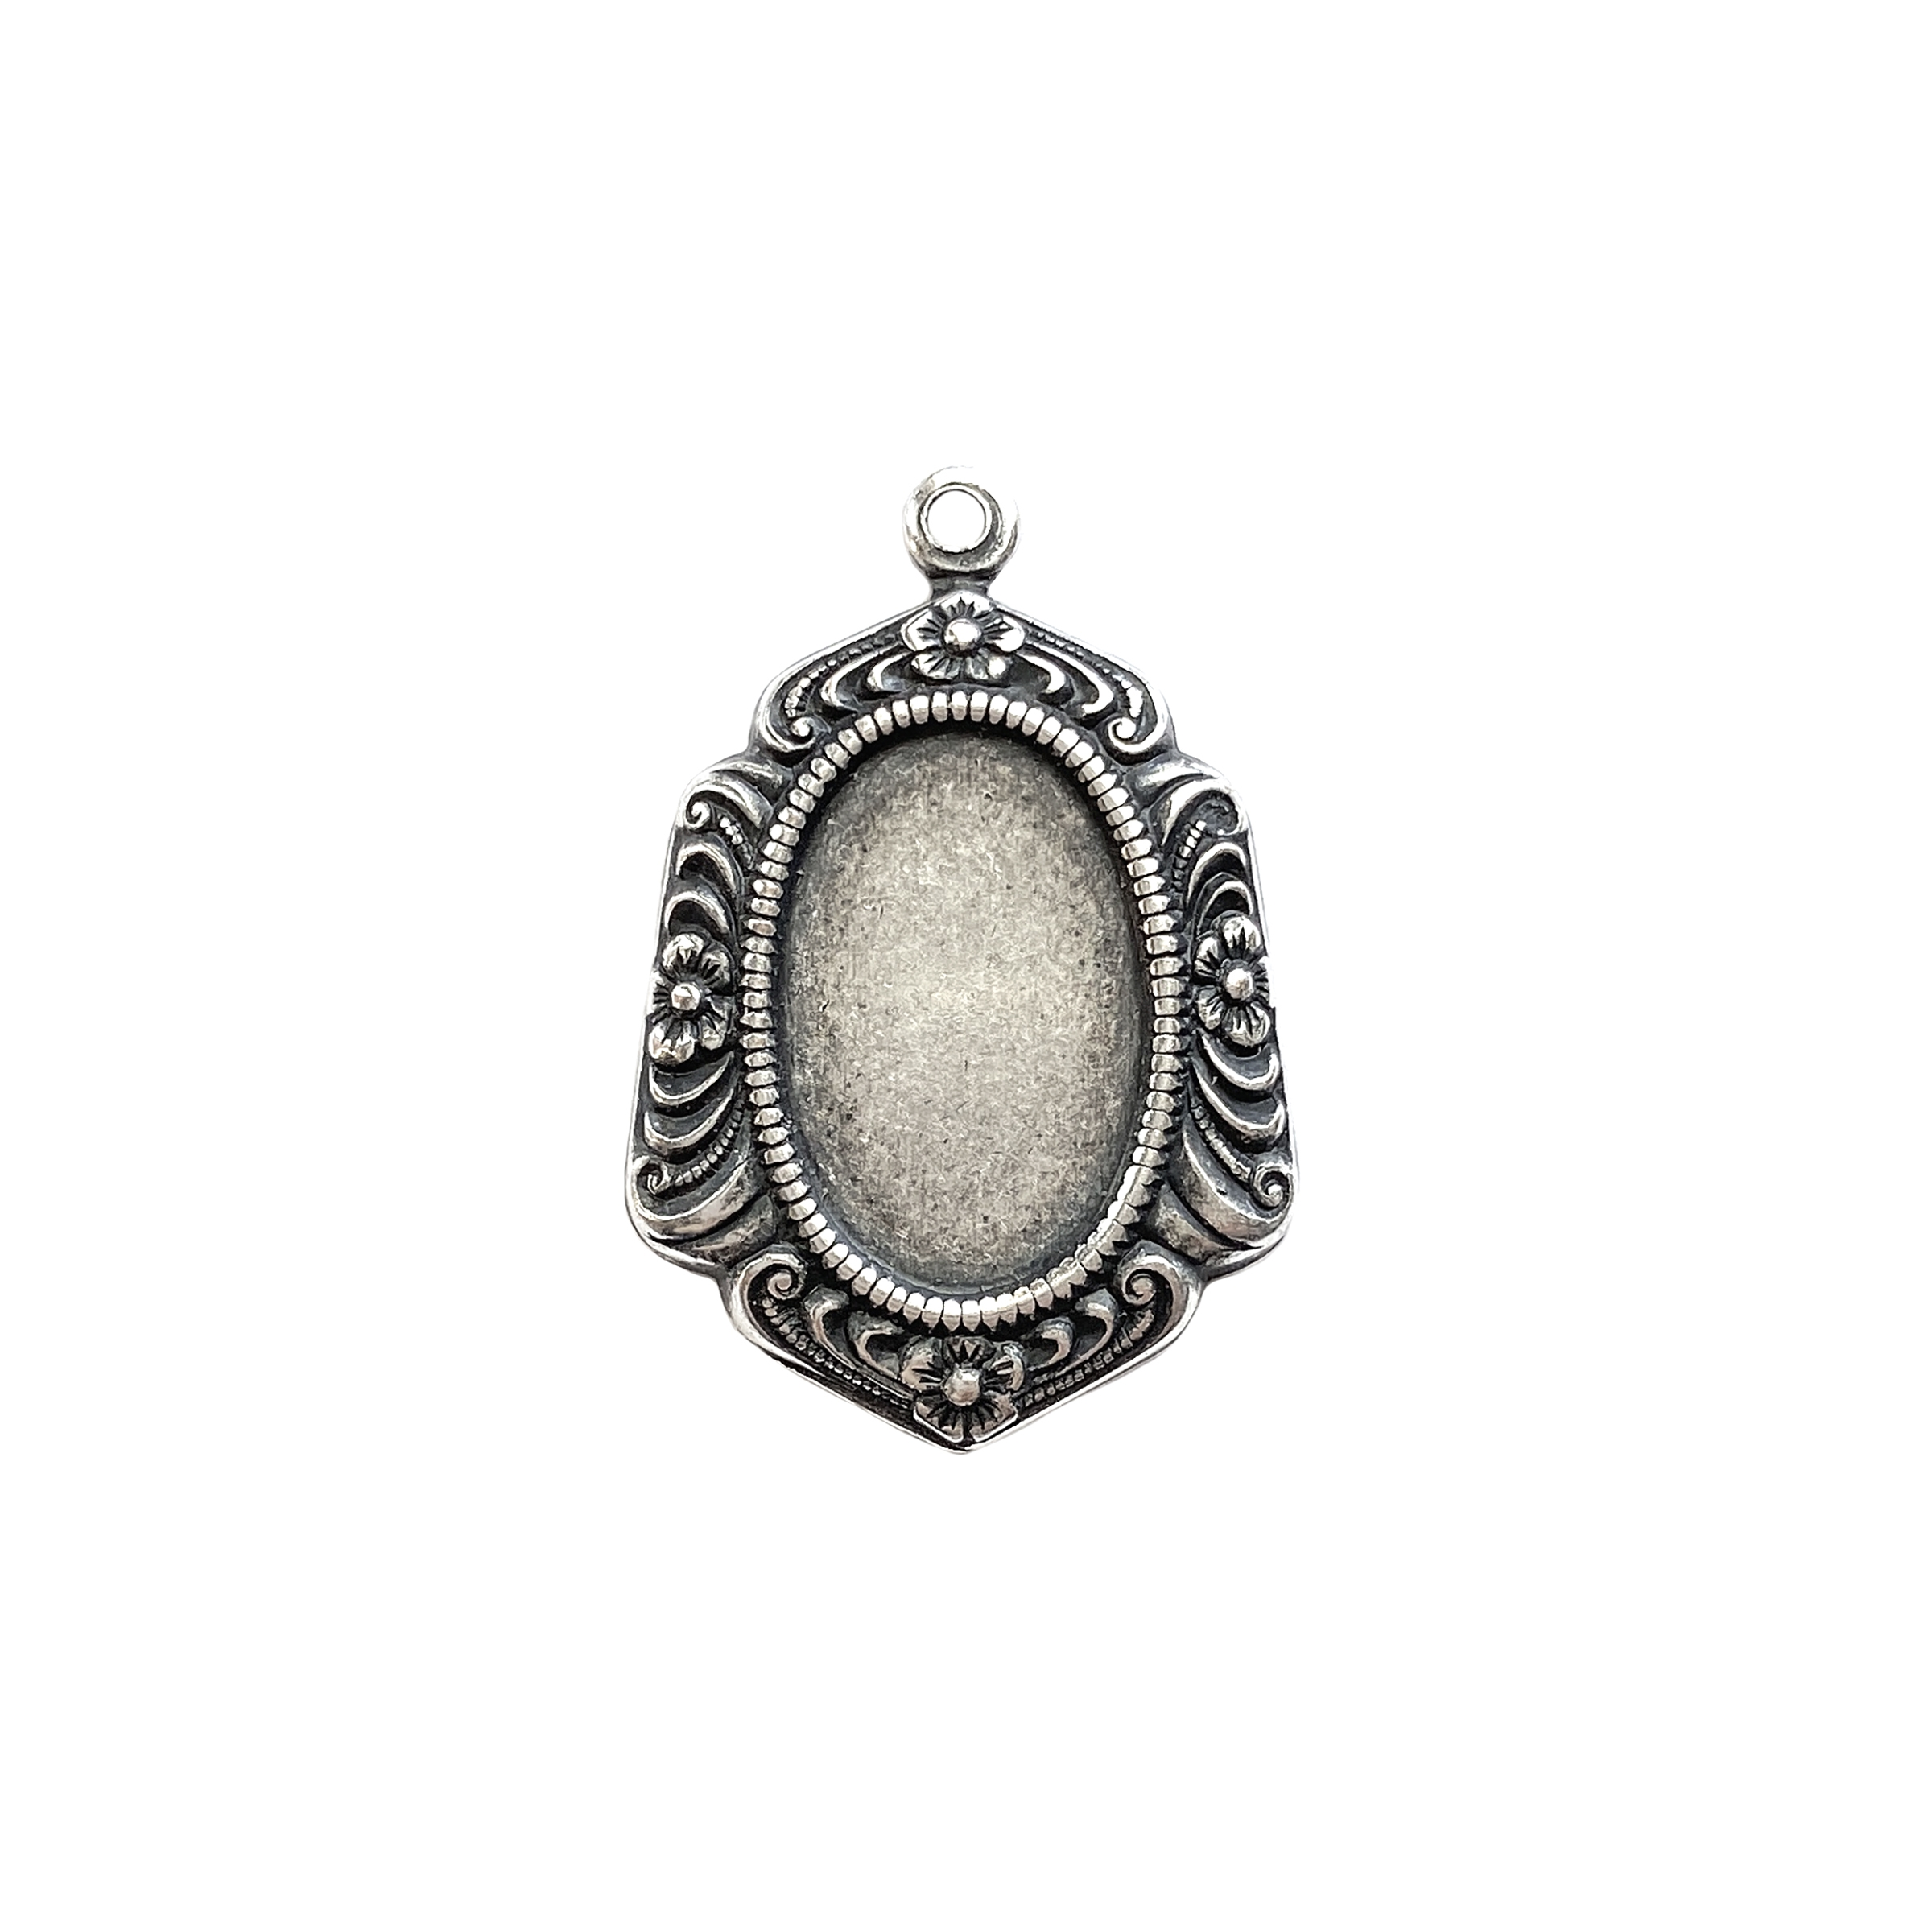 brass mounts, pendants, cameo mounts, silverware silverplate, antique silver, US Made, B'sue Boutiques, jewelry making, jewelry supplies, Victorian jewelry, stone mounts, vintage supplies, jewelry findings, 13 x 10mm, 04471